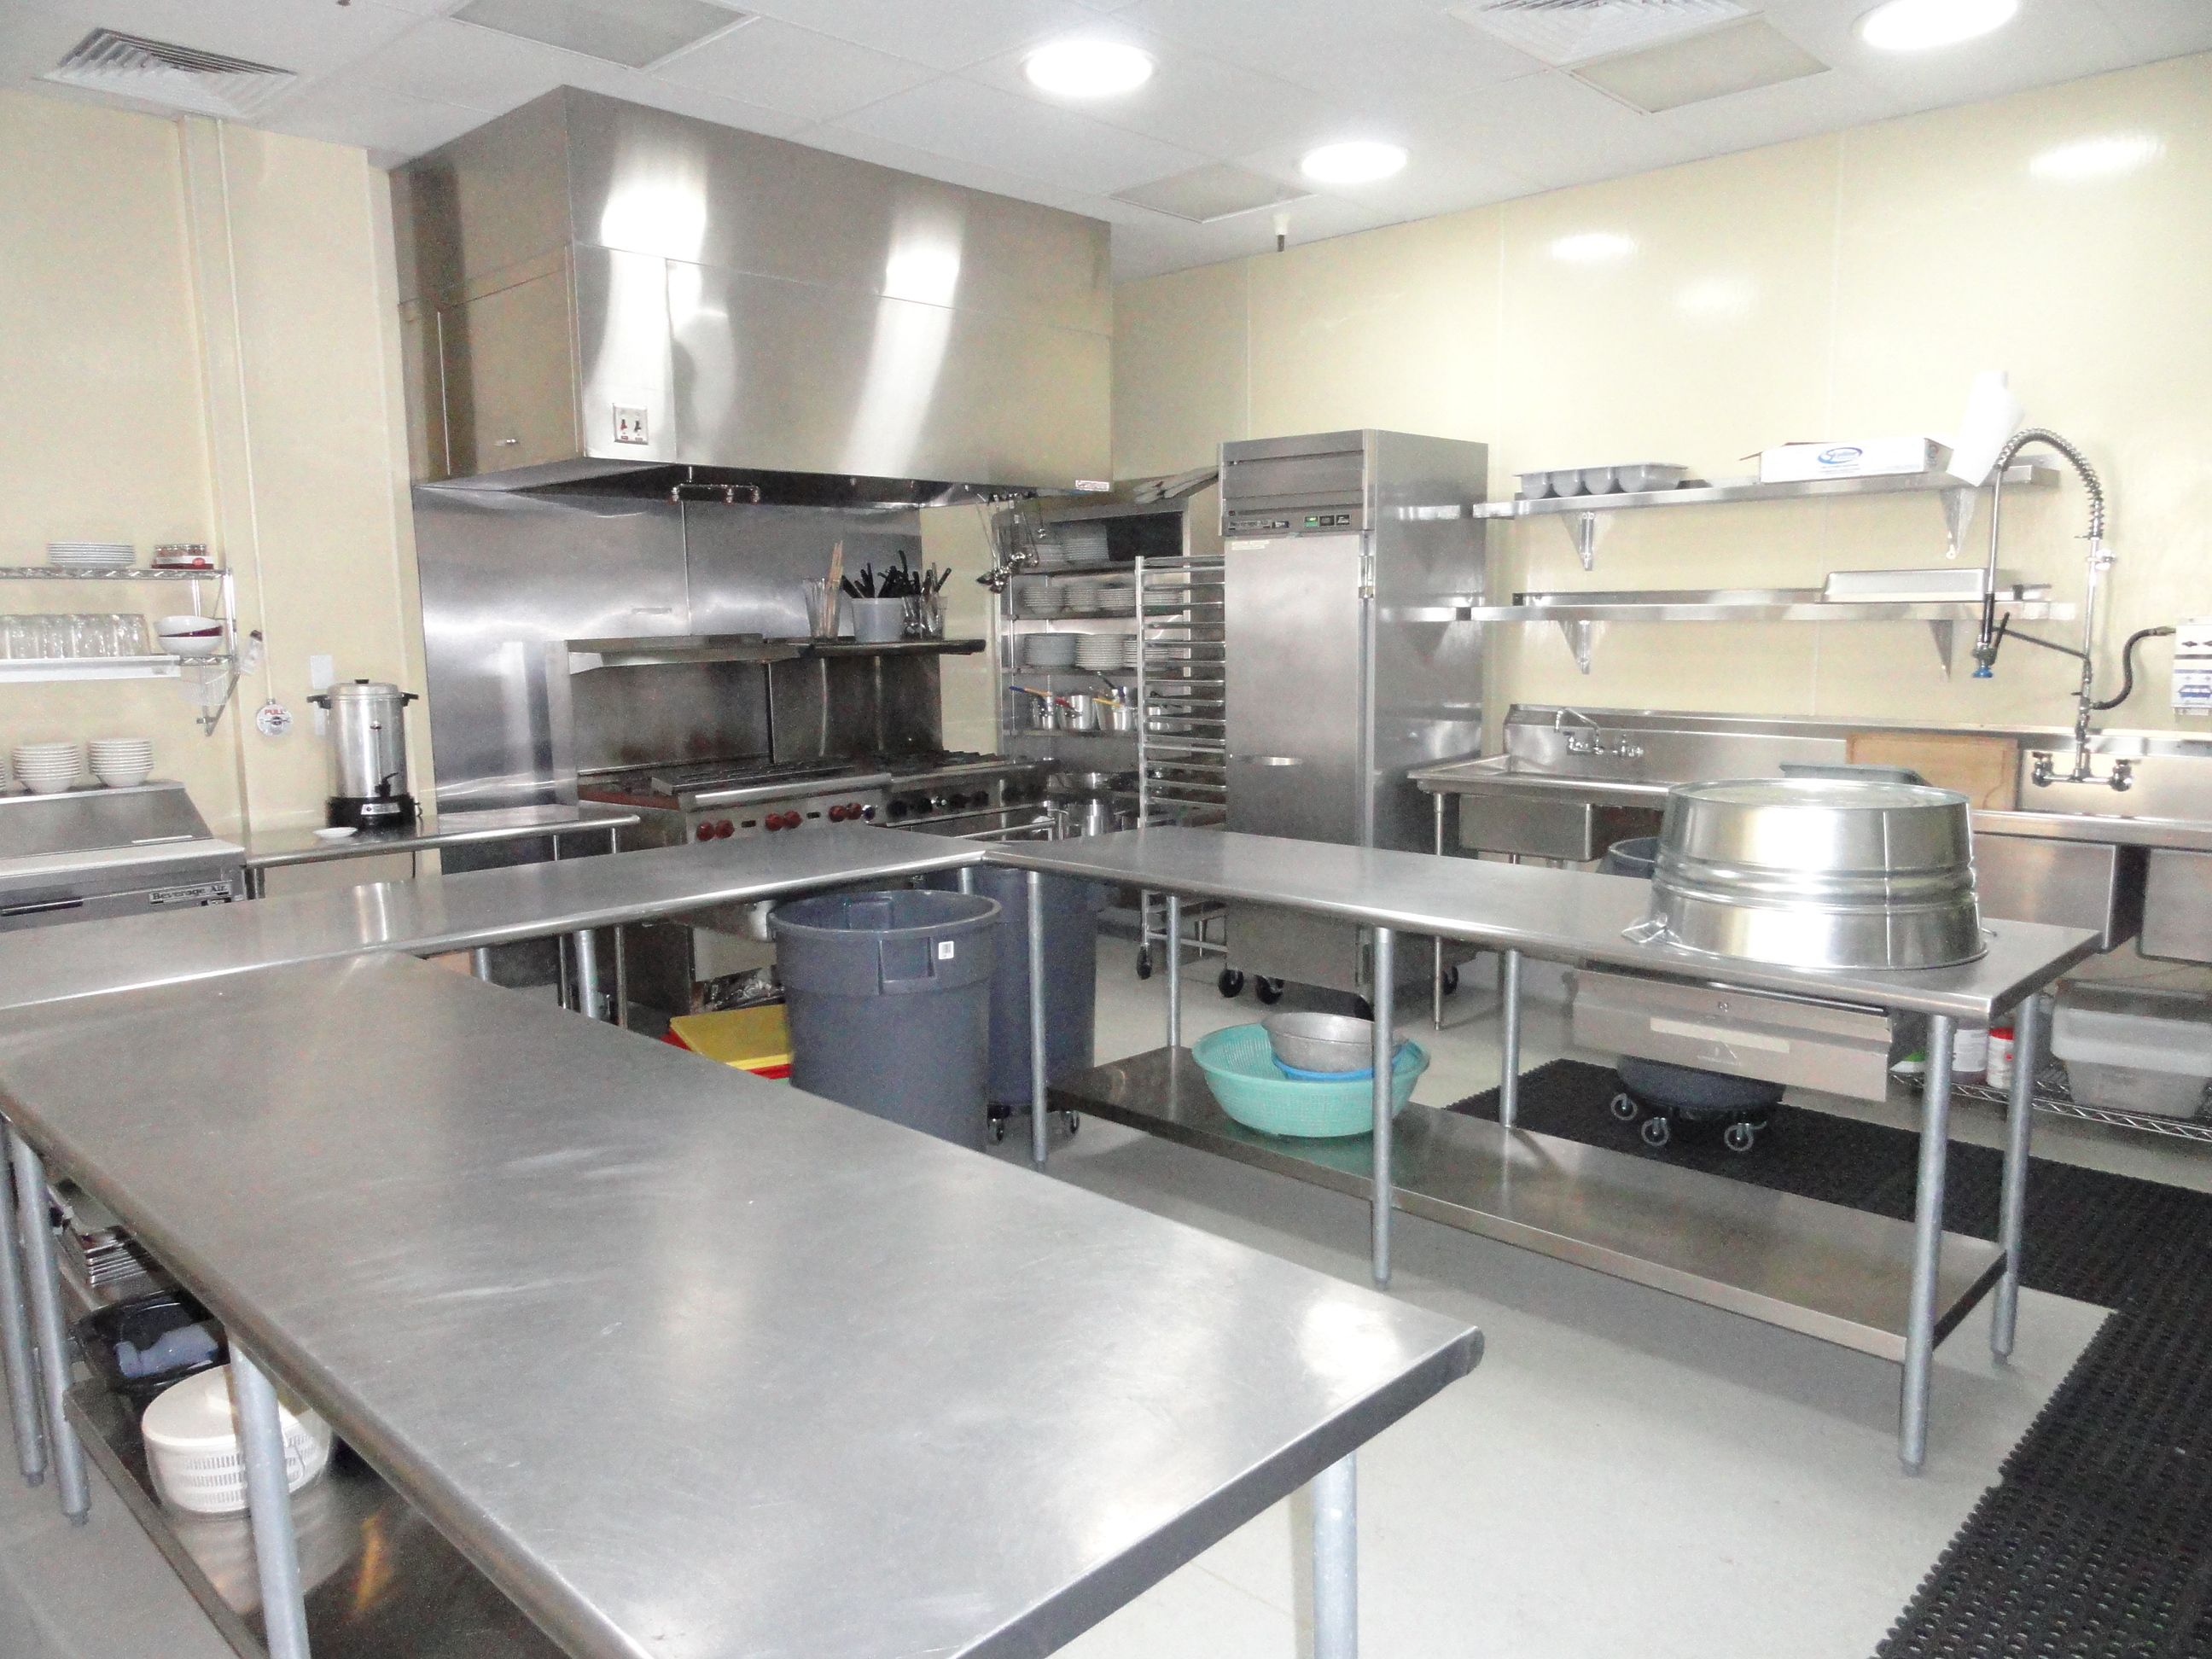 Free Commercial Kitchen Layout Design Software 12 Excellent Small Commercial Kitchen Equipment Digital